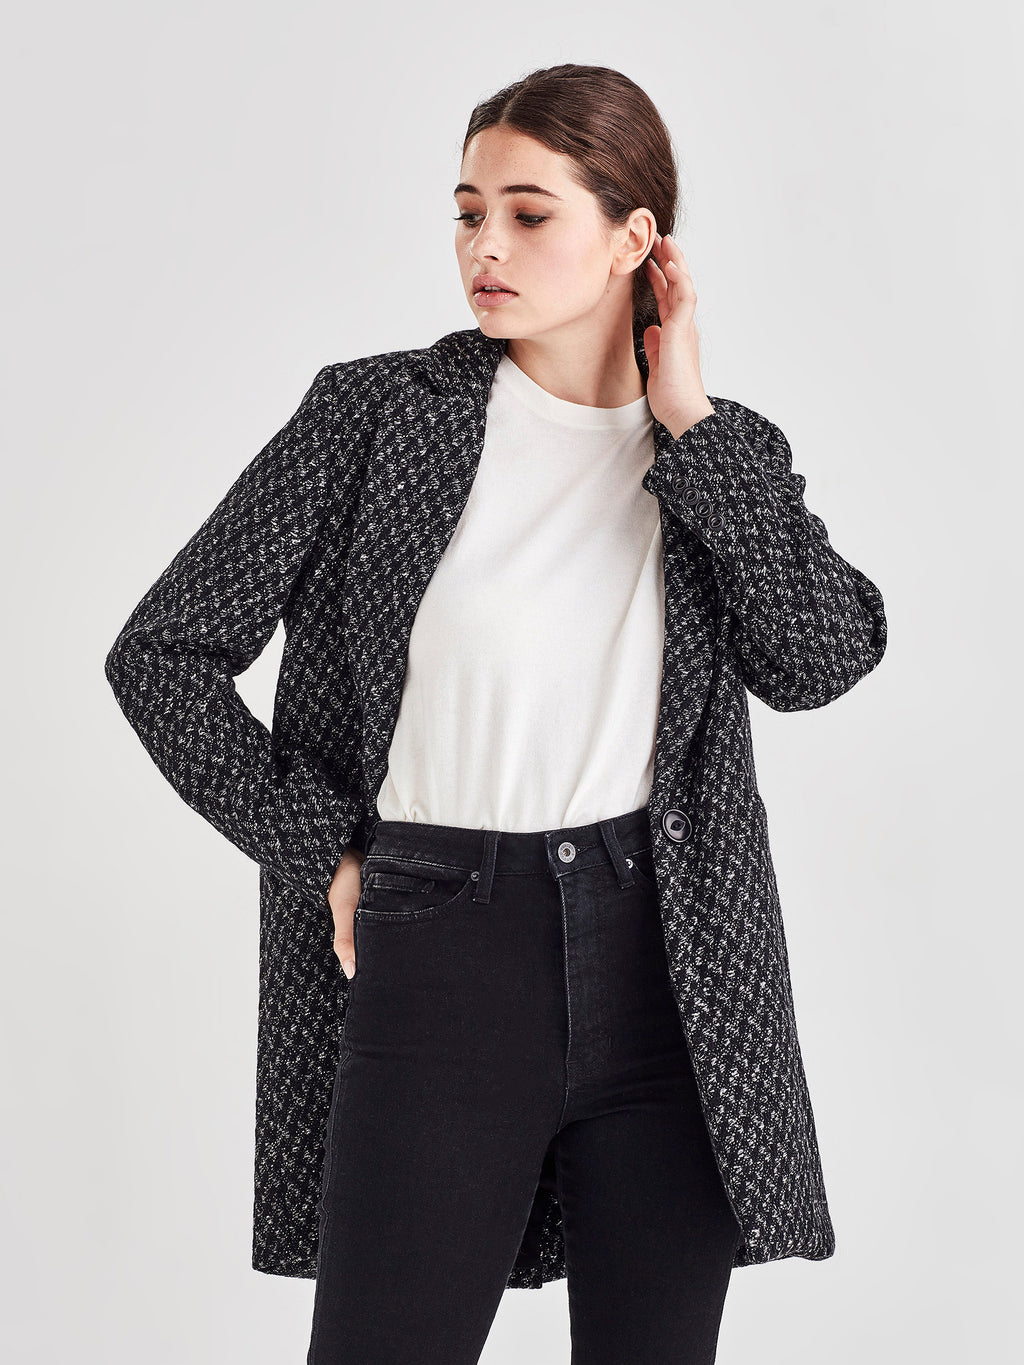 Dahl Coat (Speckled Boucle Coating) Speckle